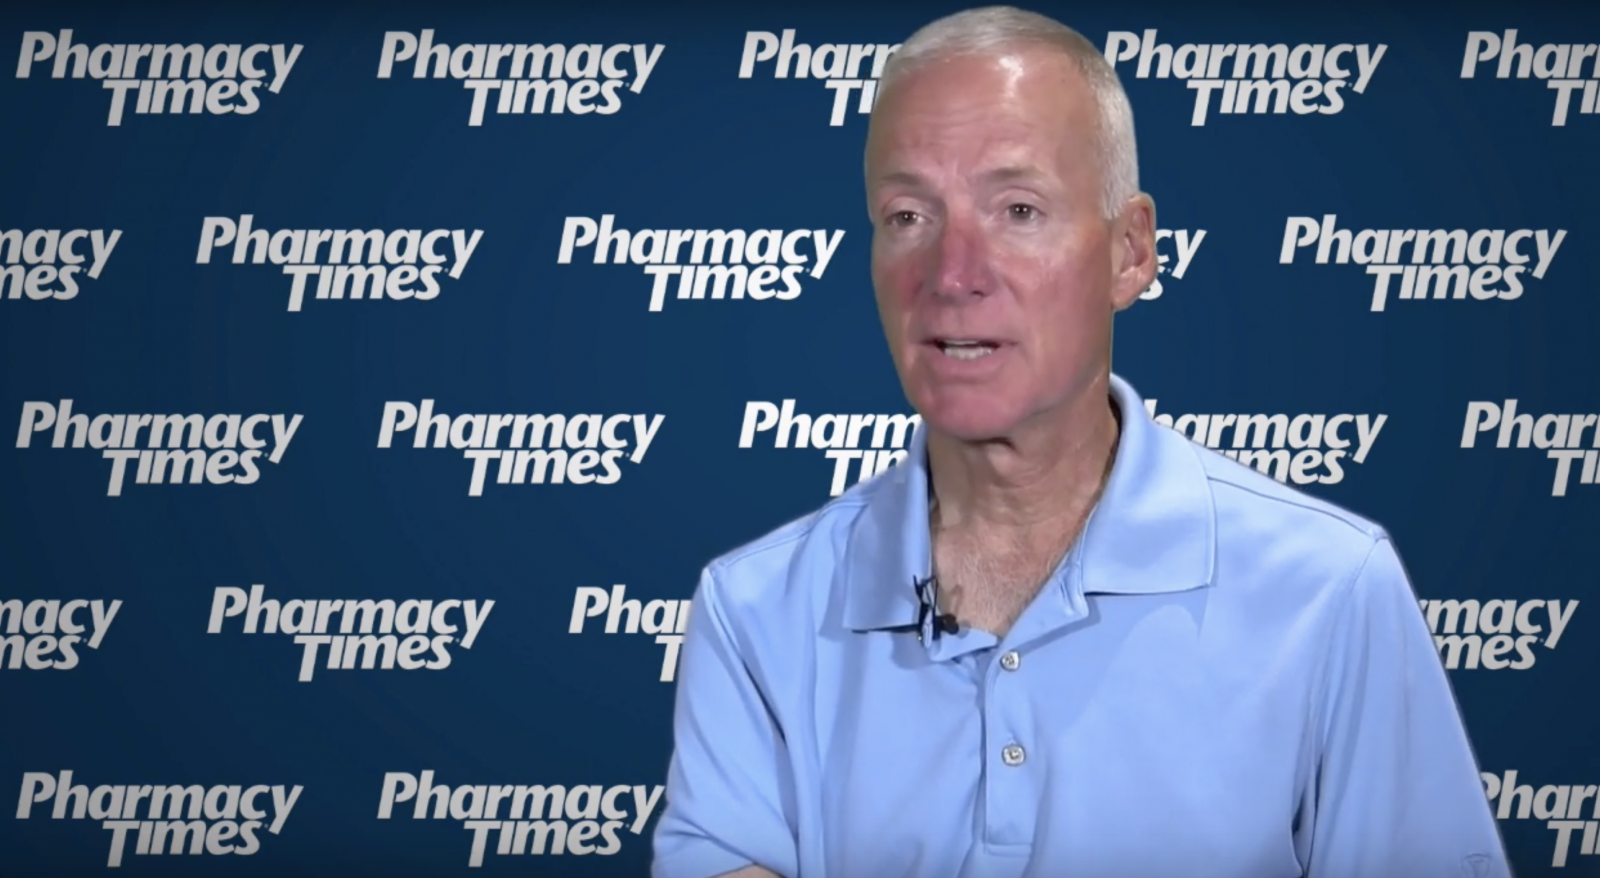 How a Pharmacy Background Can Help with Drug Abuse Prevention